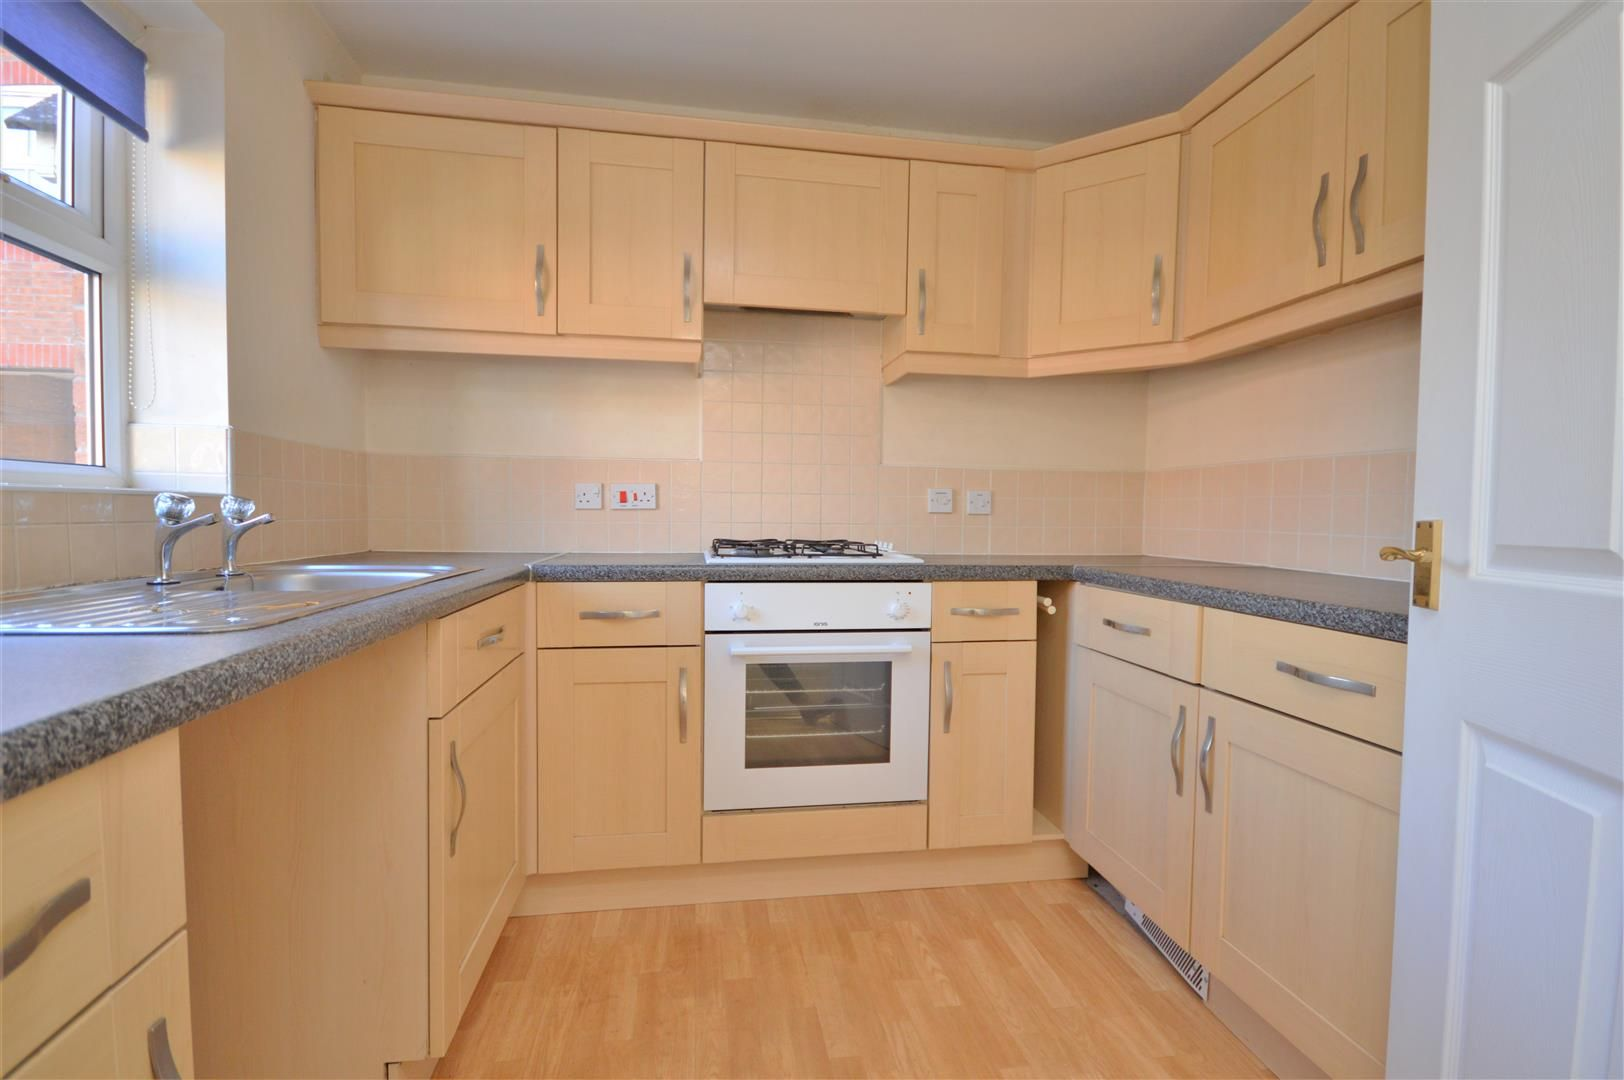 2 bed end-of-terrace for sale  - Property Image 5